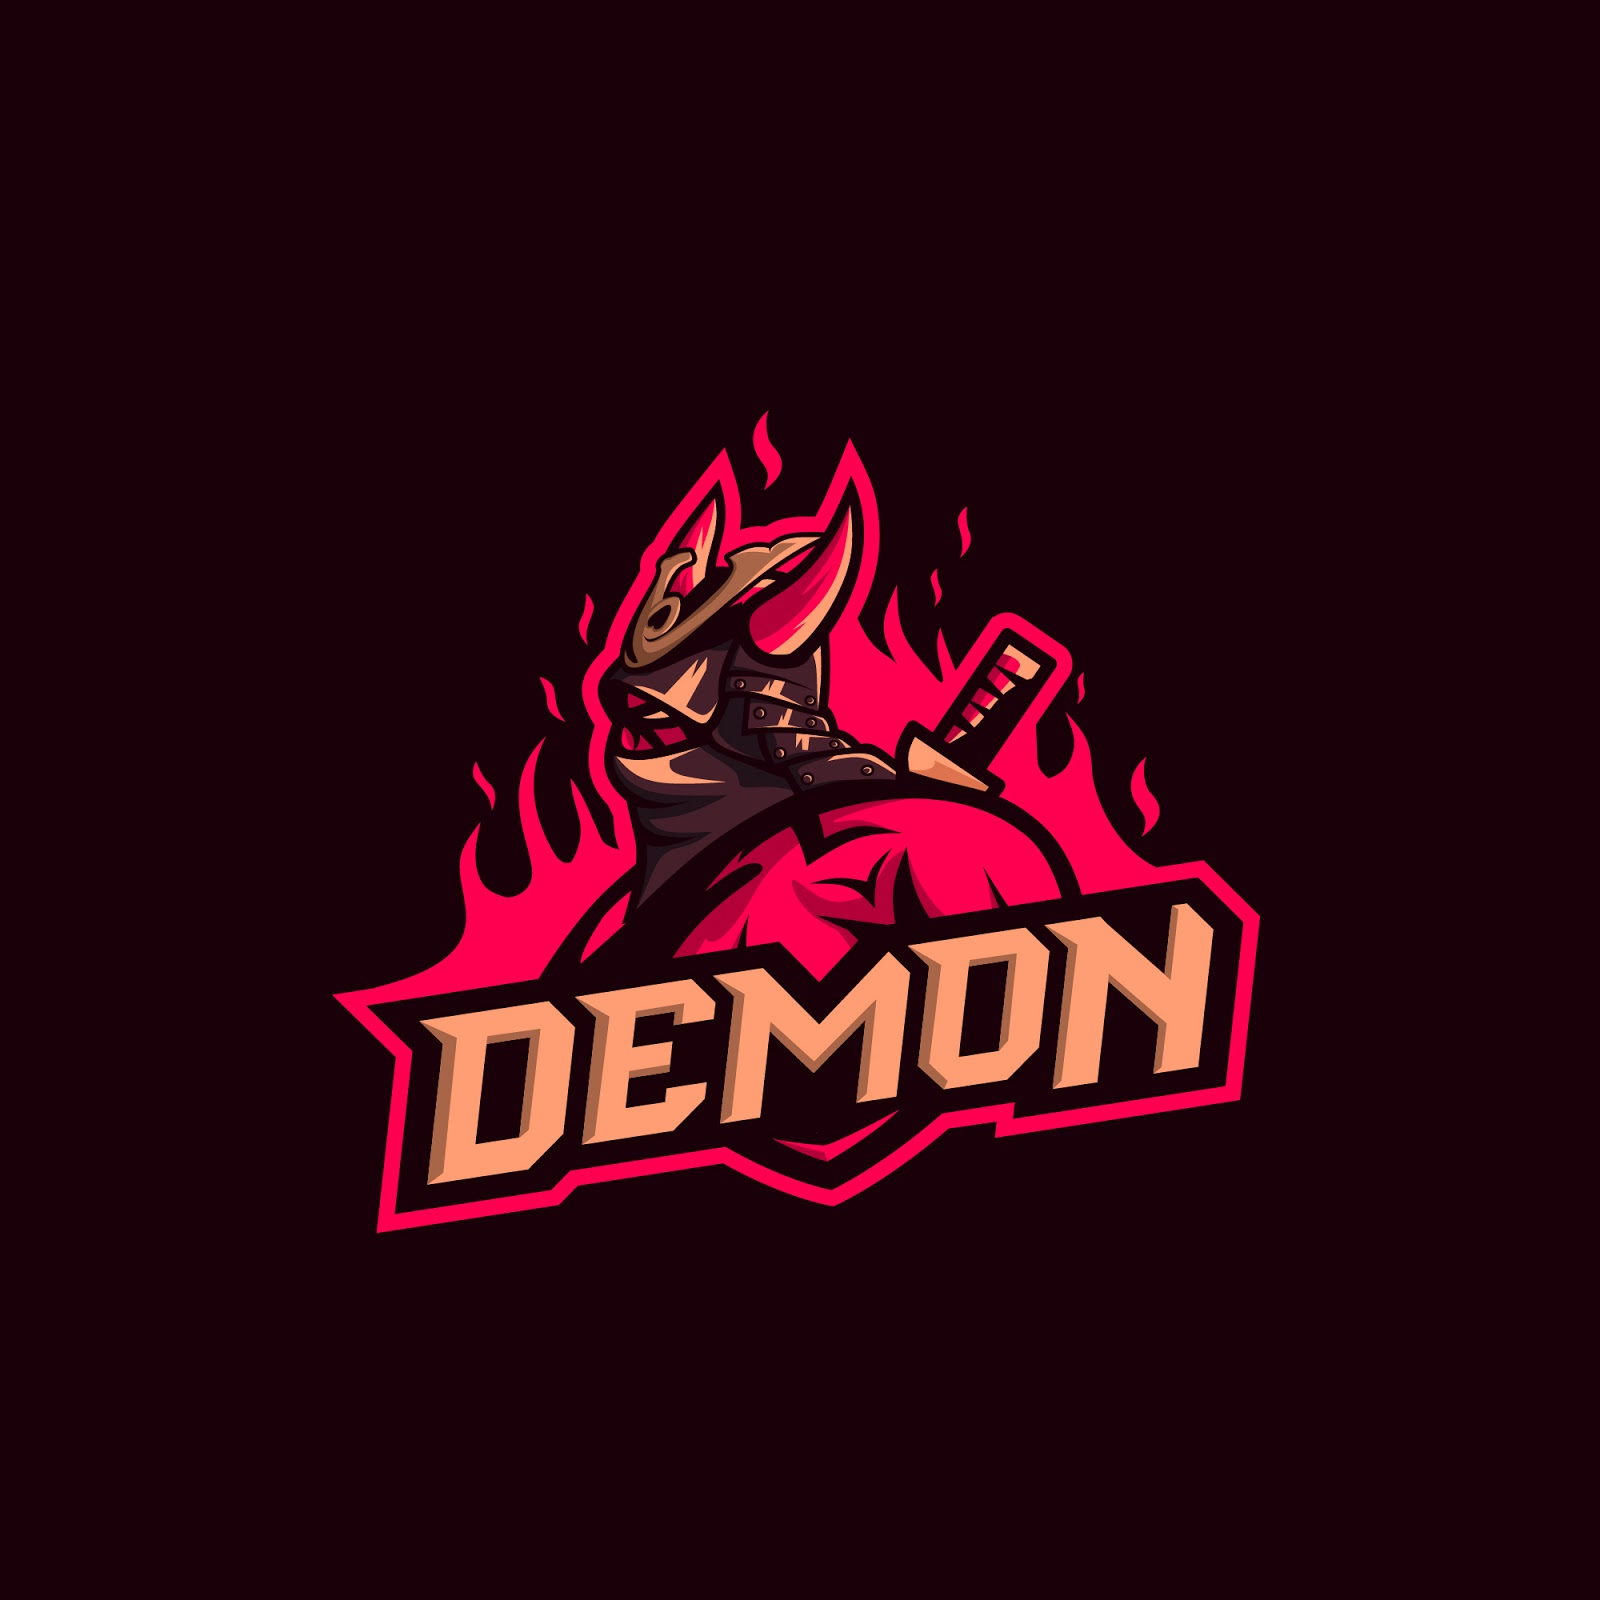 Samurai Demon Premium Logo Free Download Vector CDR, AI, EPS and PNG Formats